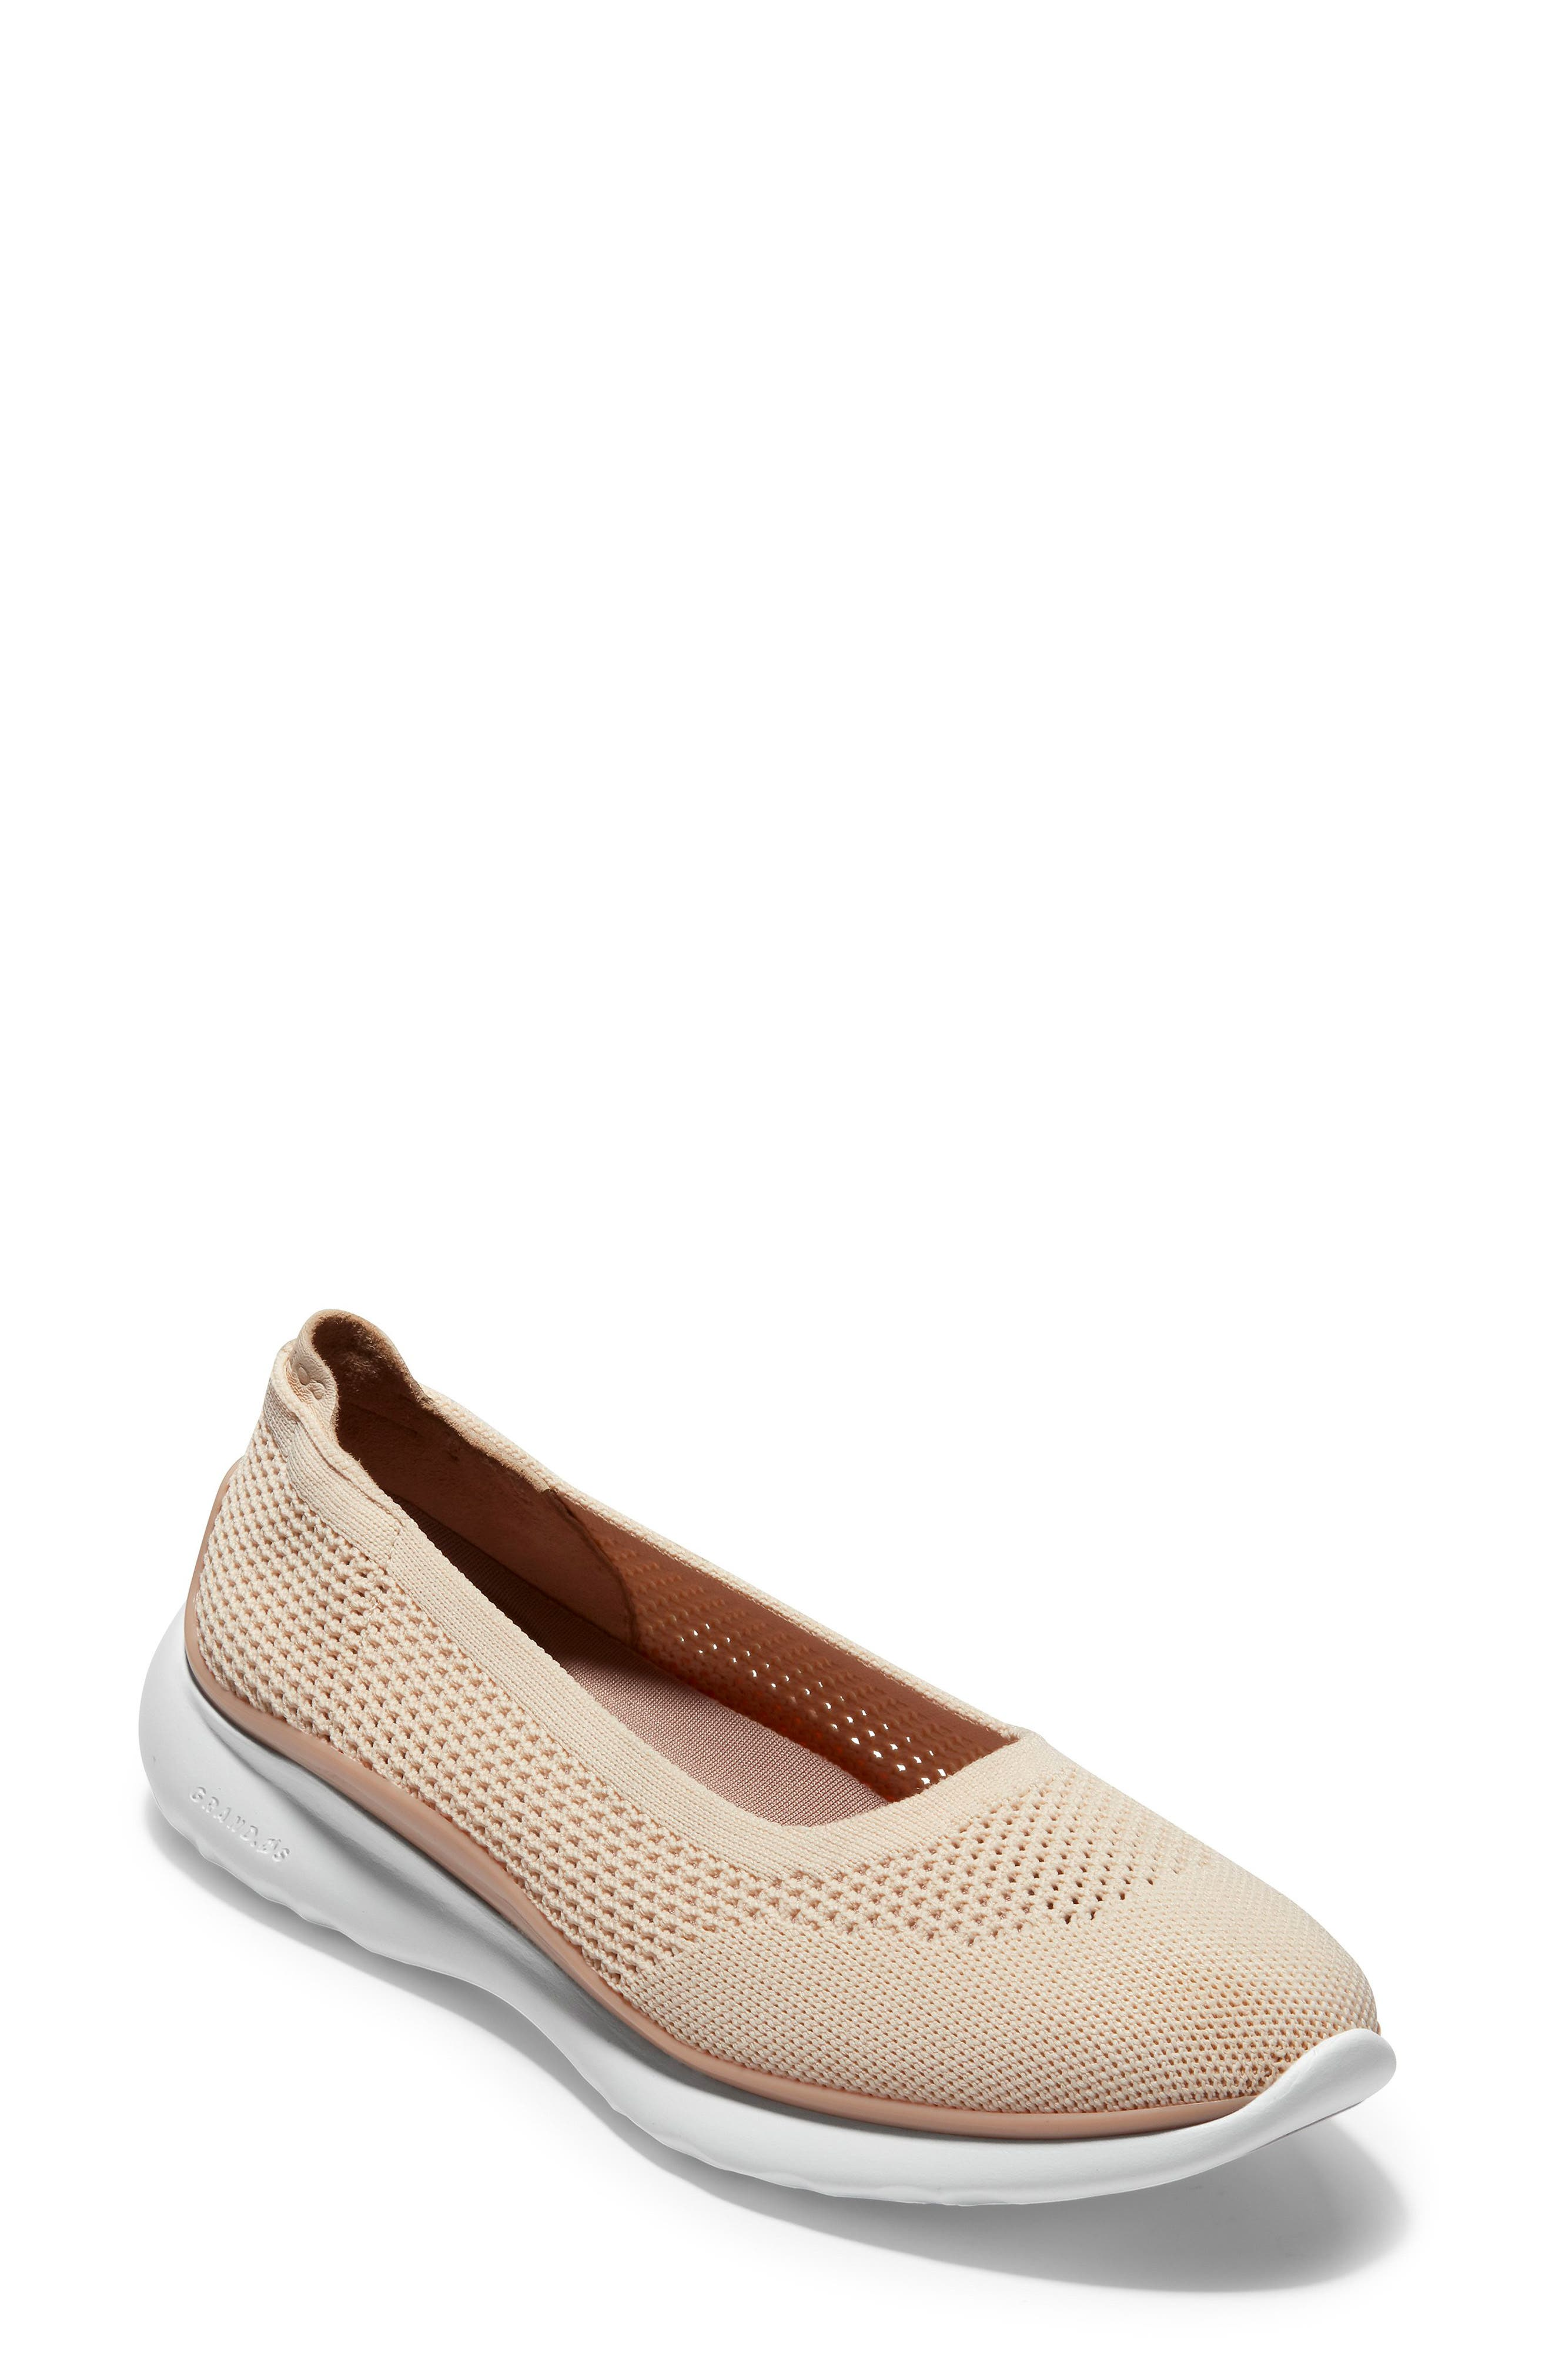 ZeroGrand Knit Sneaker, Main, color, SAND/ ROSE KNIT/ LEATHER